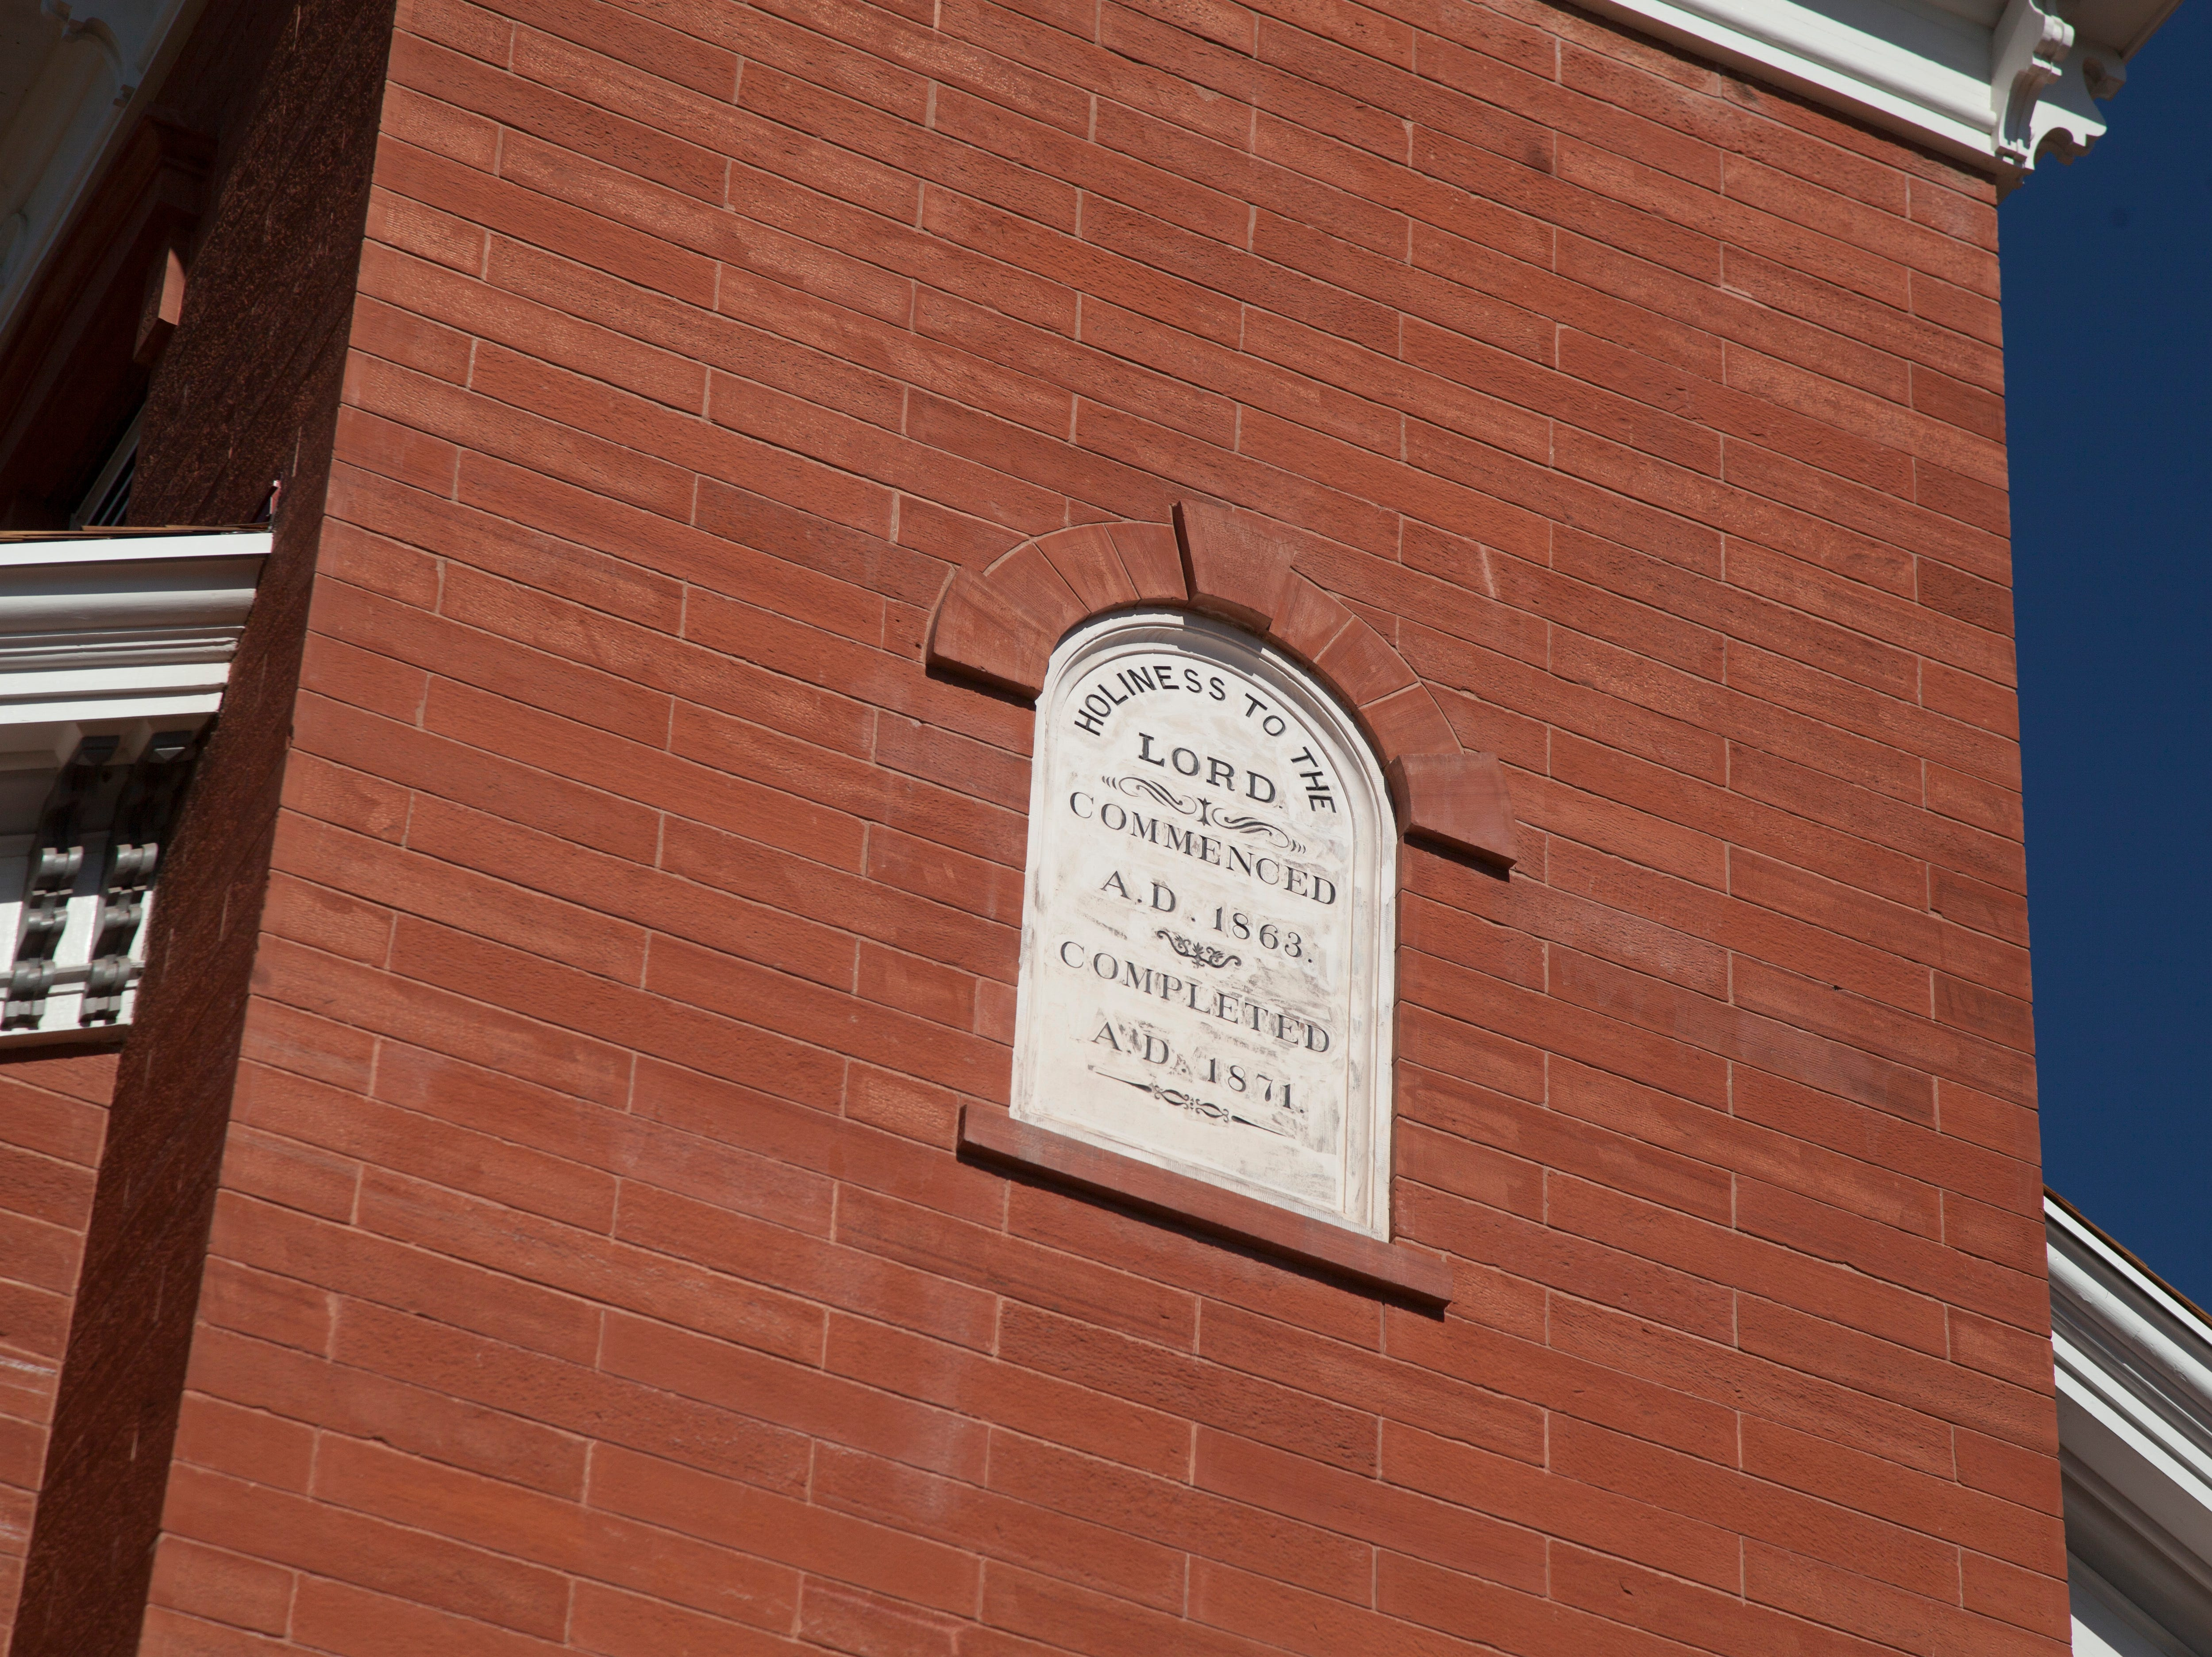 """Holiness to the Lord. Commenced A.D. 1863. Completed A.D. 1871"" is inscribed on the wall of the St. George Tabernacle. It was rededicated on July 28, 2018."